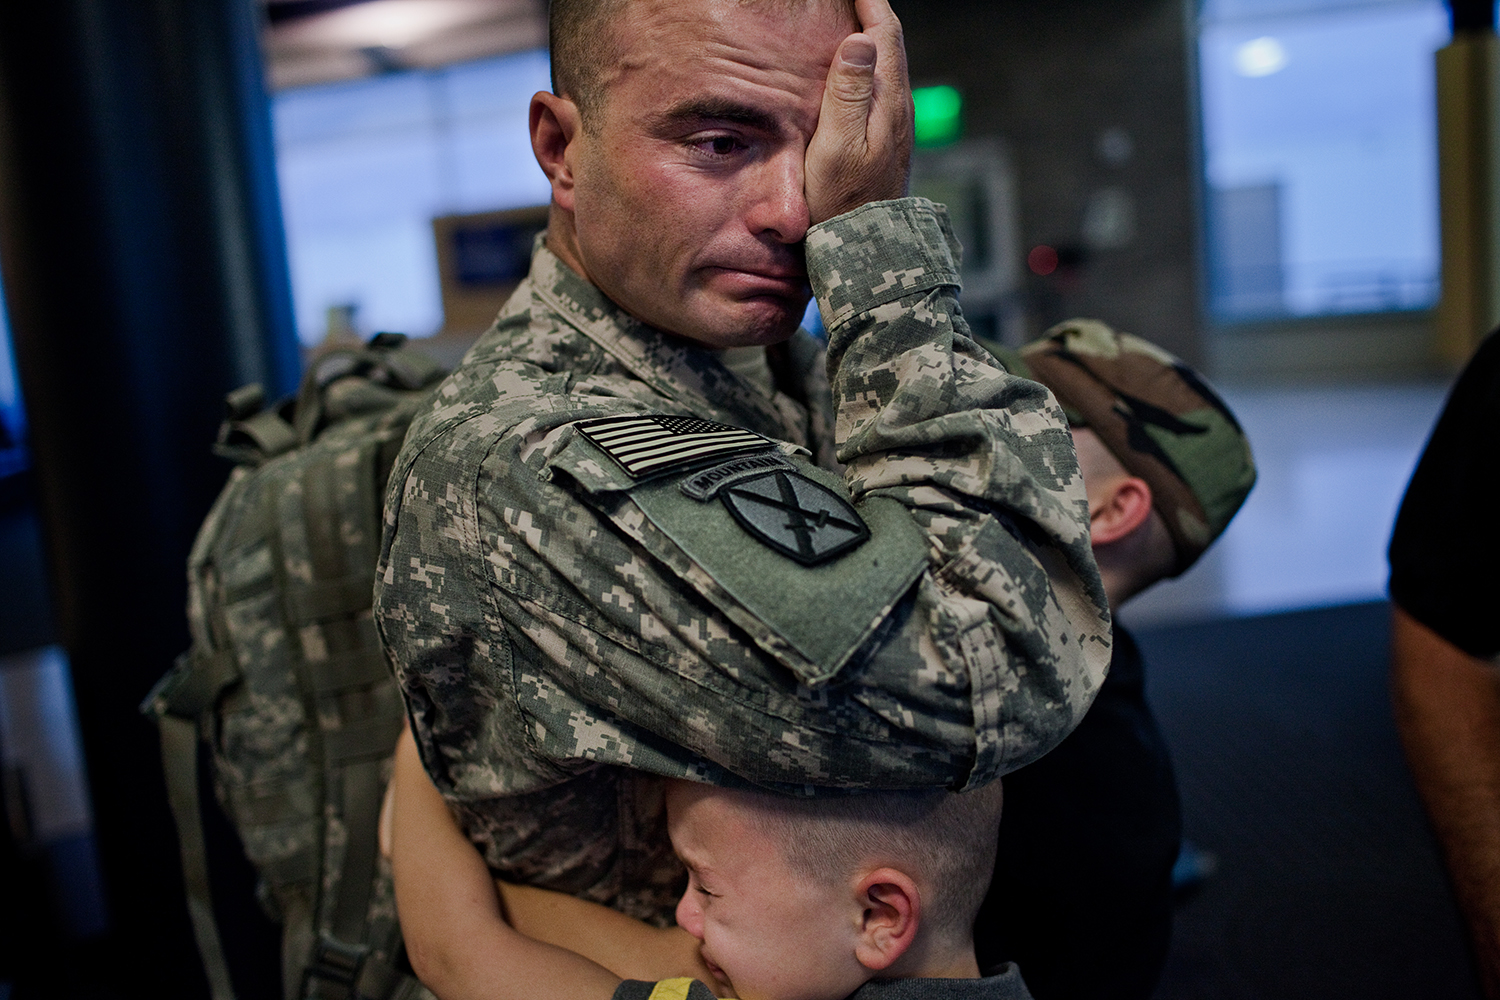 Sergeant First Class Brian Eisch weeps, as he struggles to say goodbye to his children.